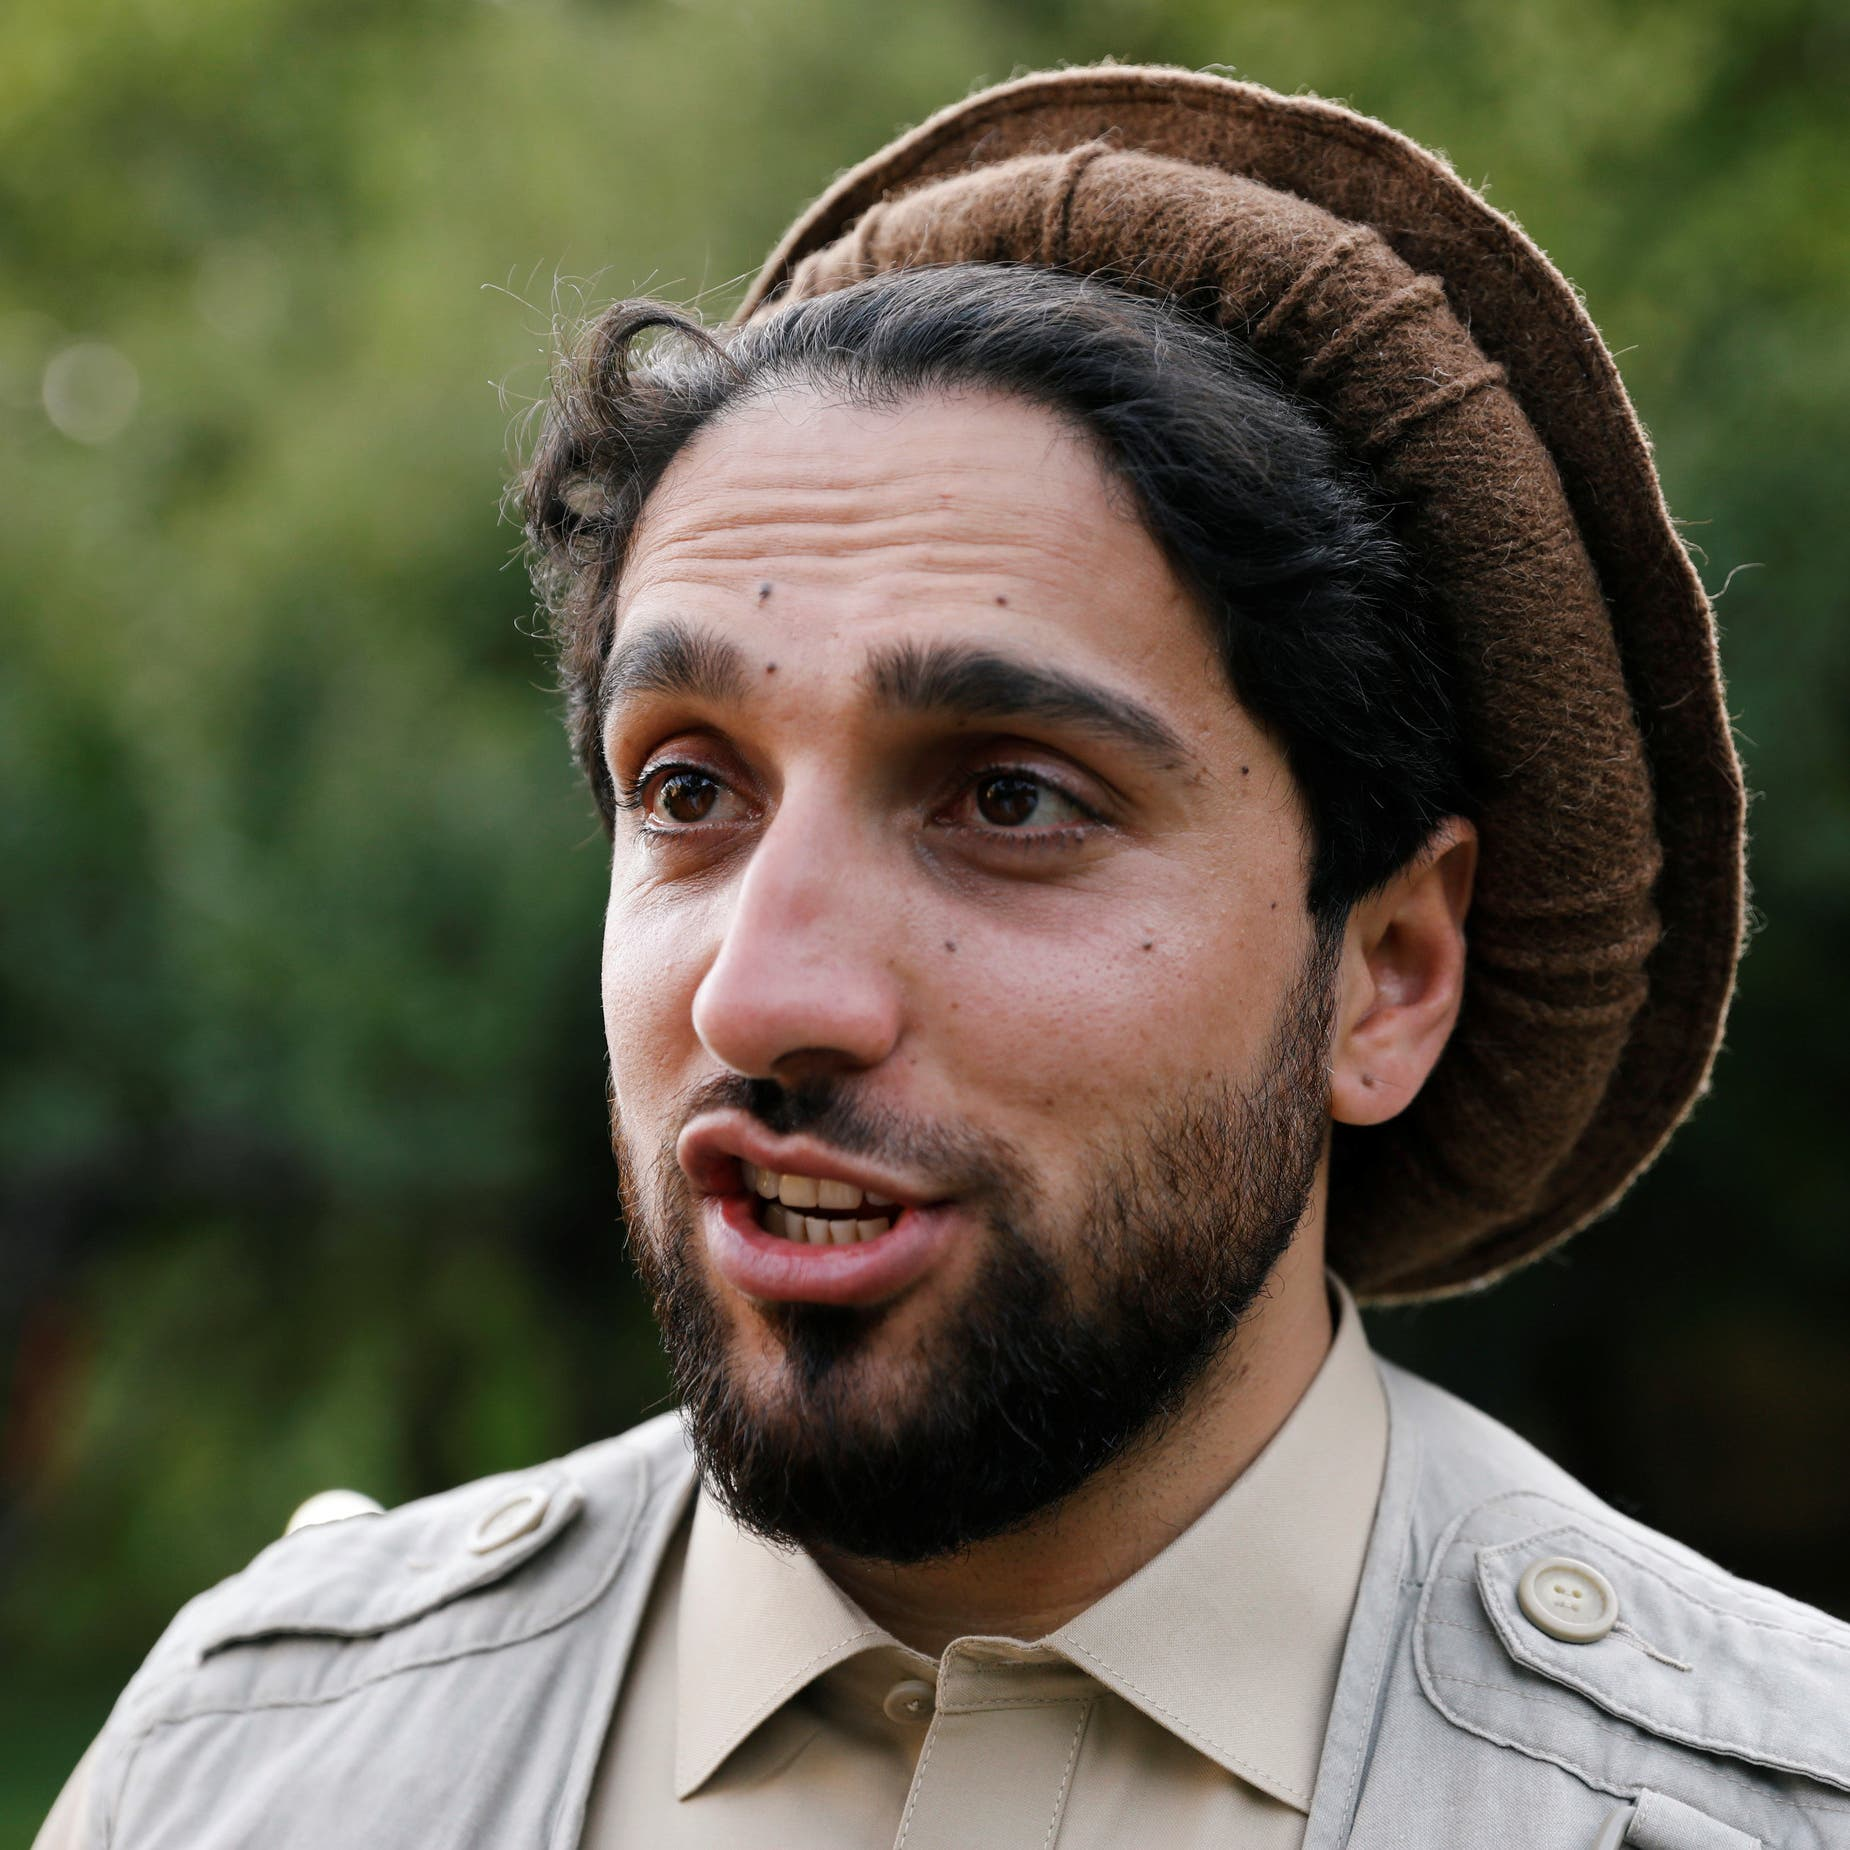 Taliban will face resistance if they try to seize Panjshir valley: Ahmad Massoud